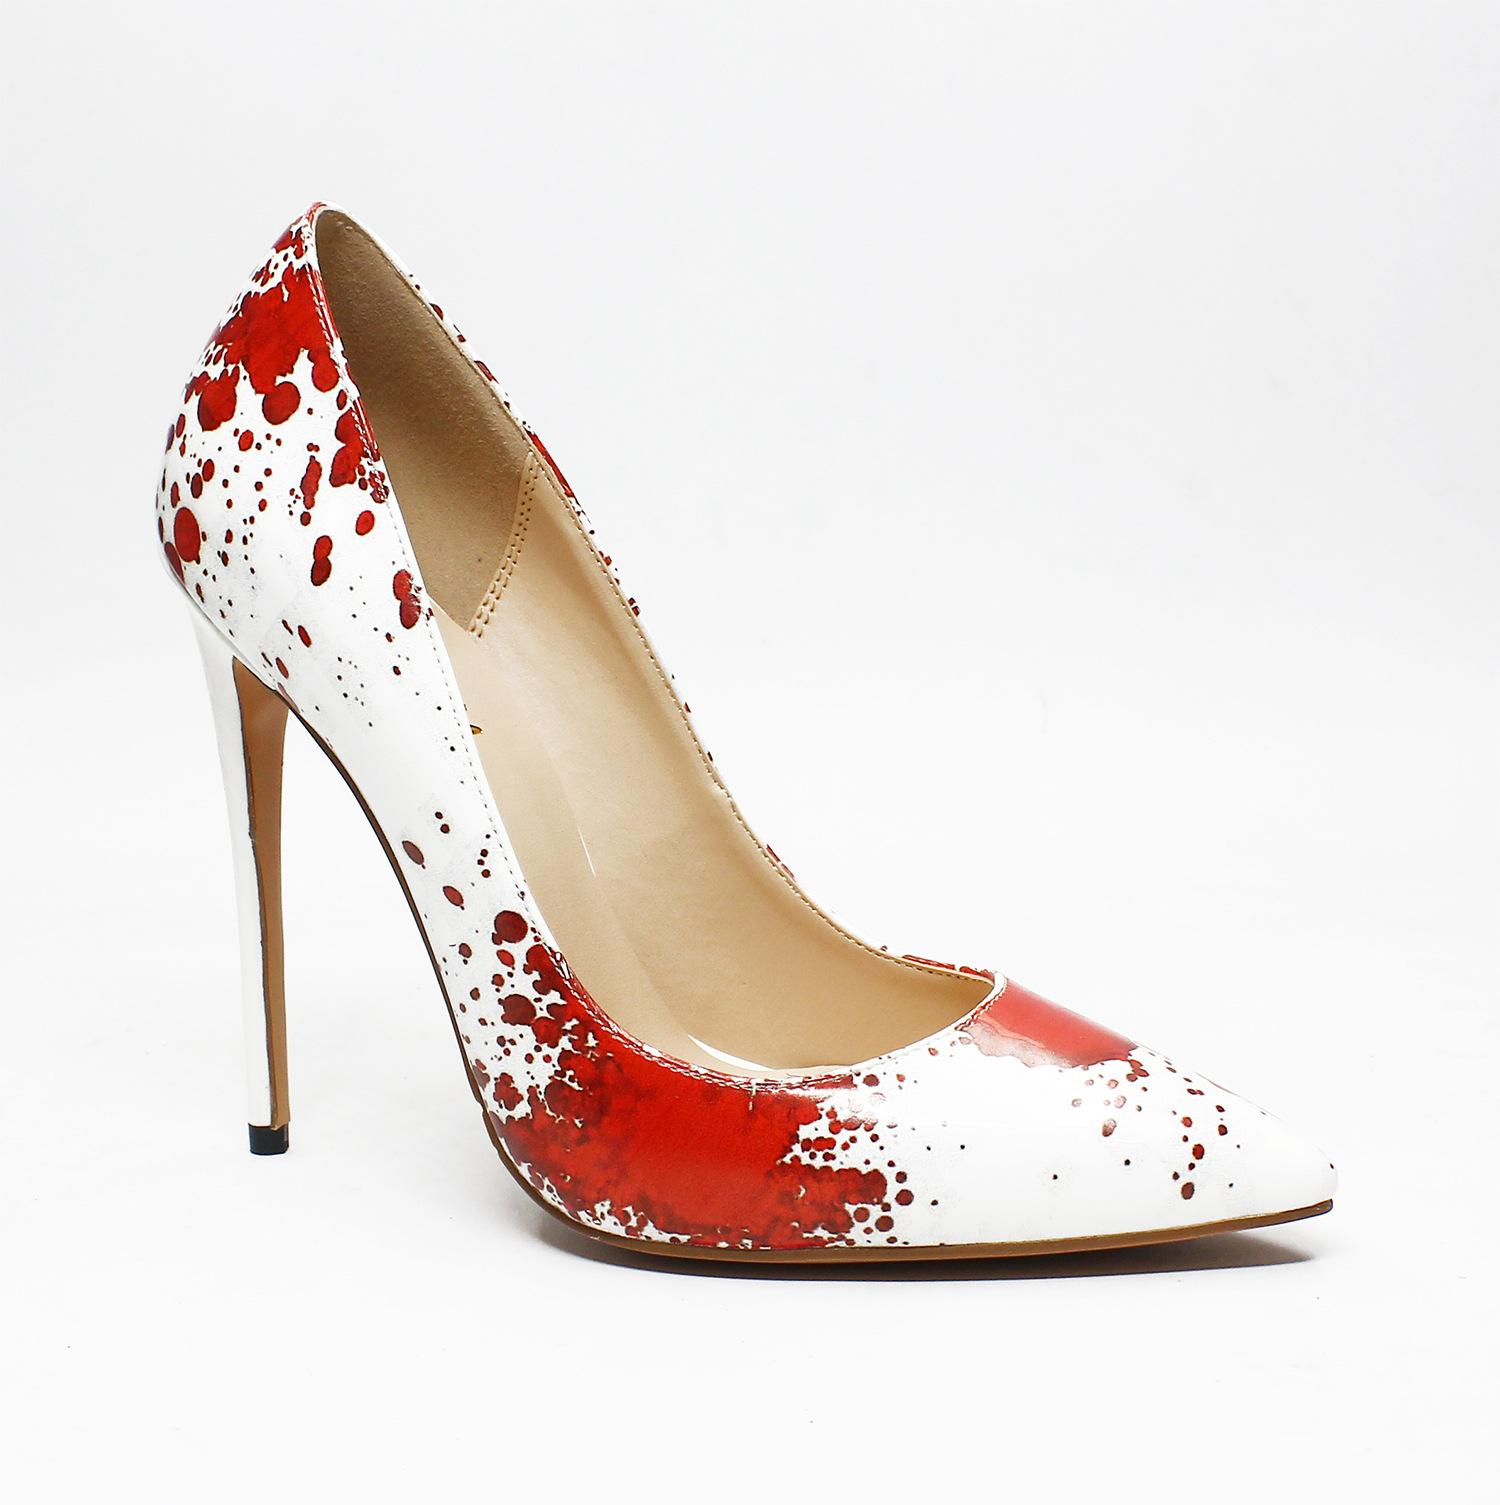 000d9ab1386d68 Luxury Designer Fashion Print High Heels Pumps Red Sole Sexy Pointy Toe  12cm Large Size Women Dress Shoes For Party Banquet Black Shoes Nude Shoes  From ...